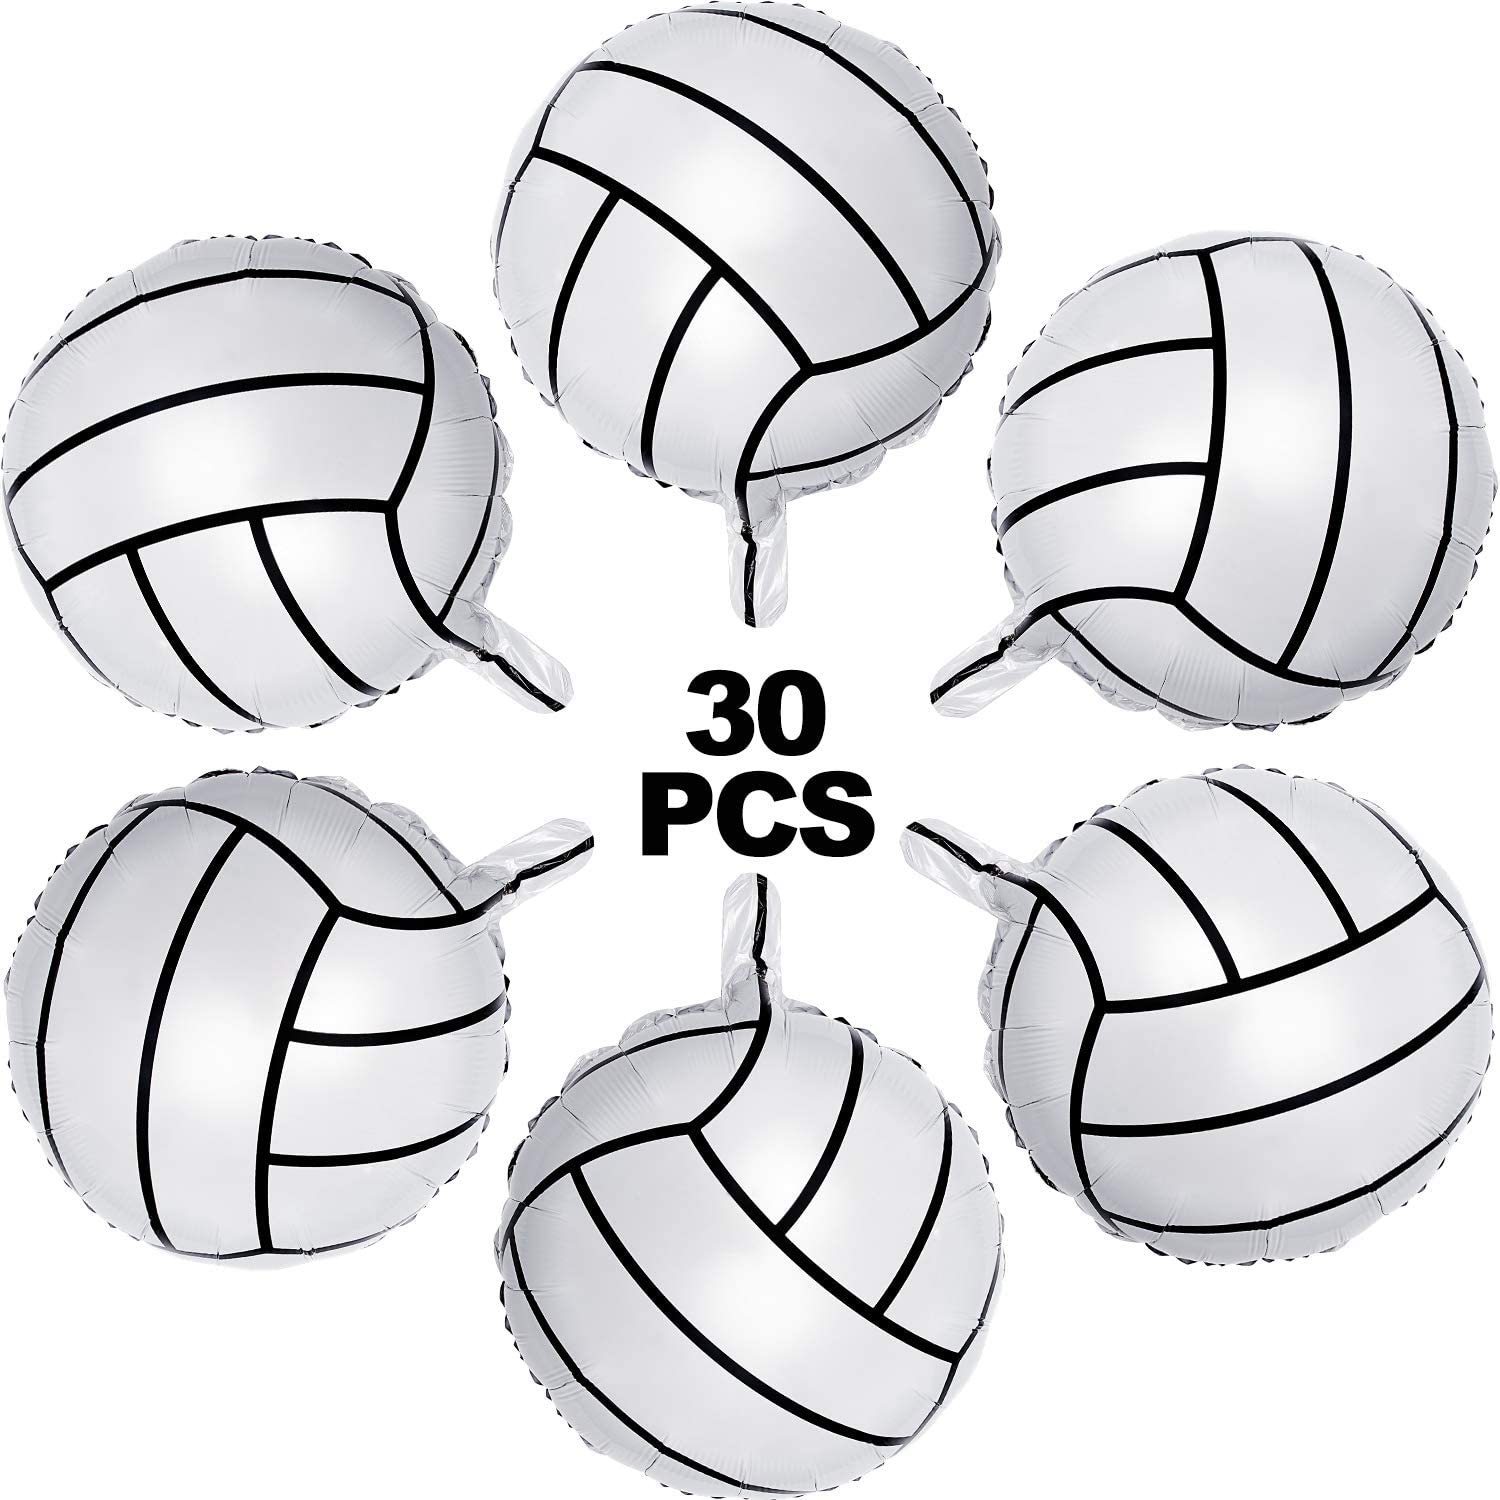 30 Pieces Volleyball Balloons Volleyball Aluminum Foil Balloons Volleyball Sports Themed Party Decoration for Birthday Holiday Party Supplies